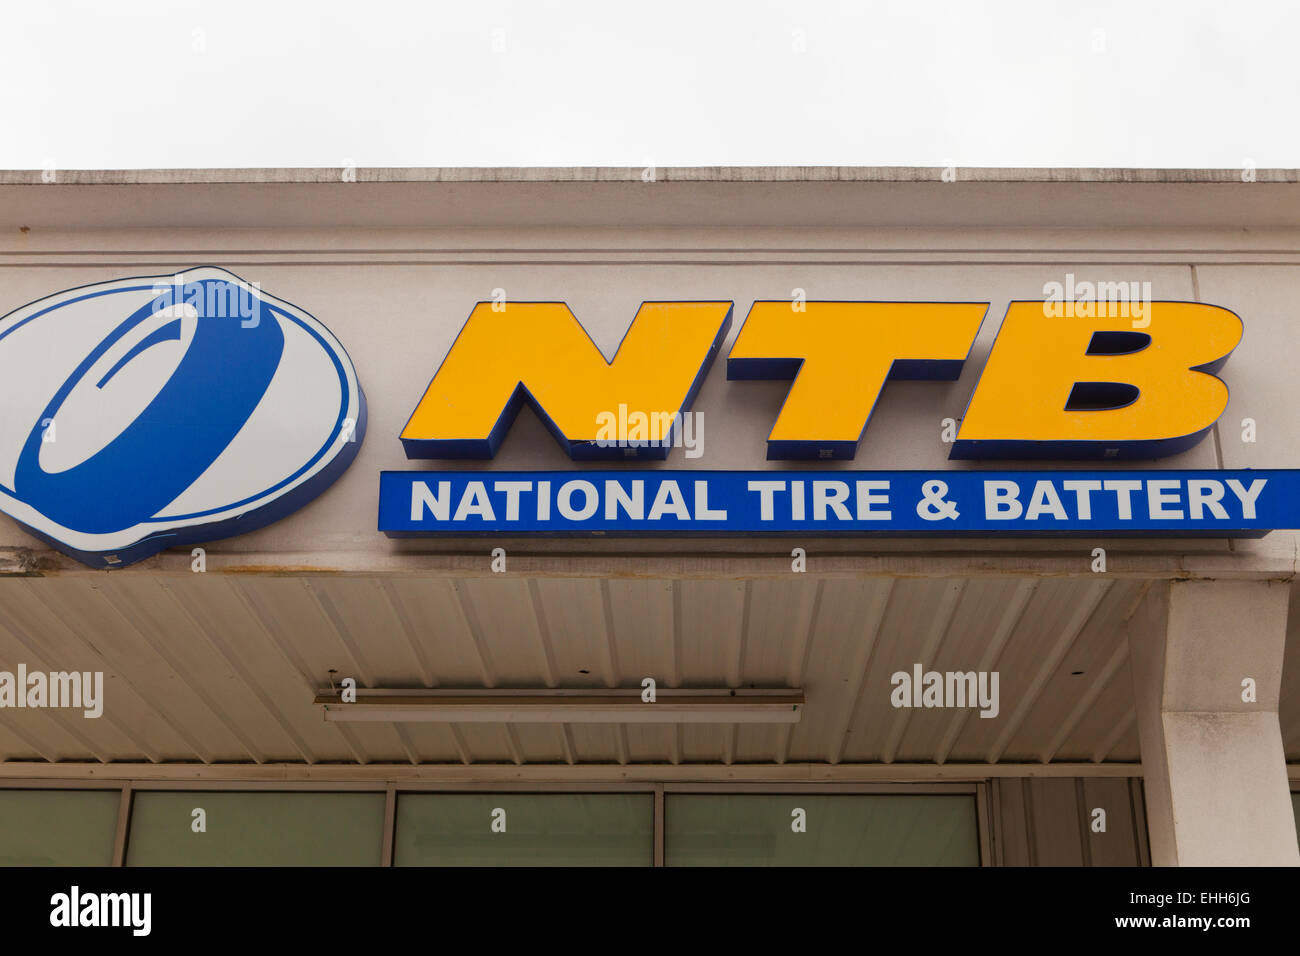 Ntb Tire Store Sign Usa Stock Photo 79669032 Alamy